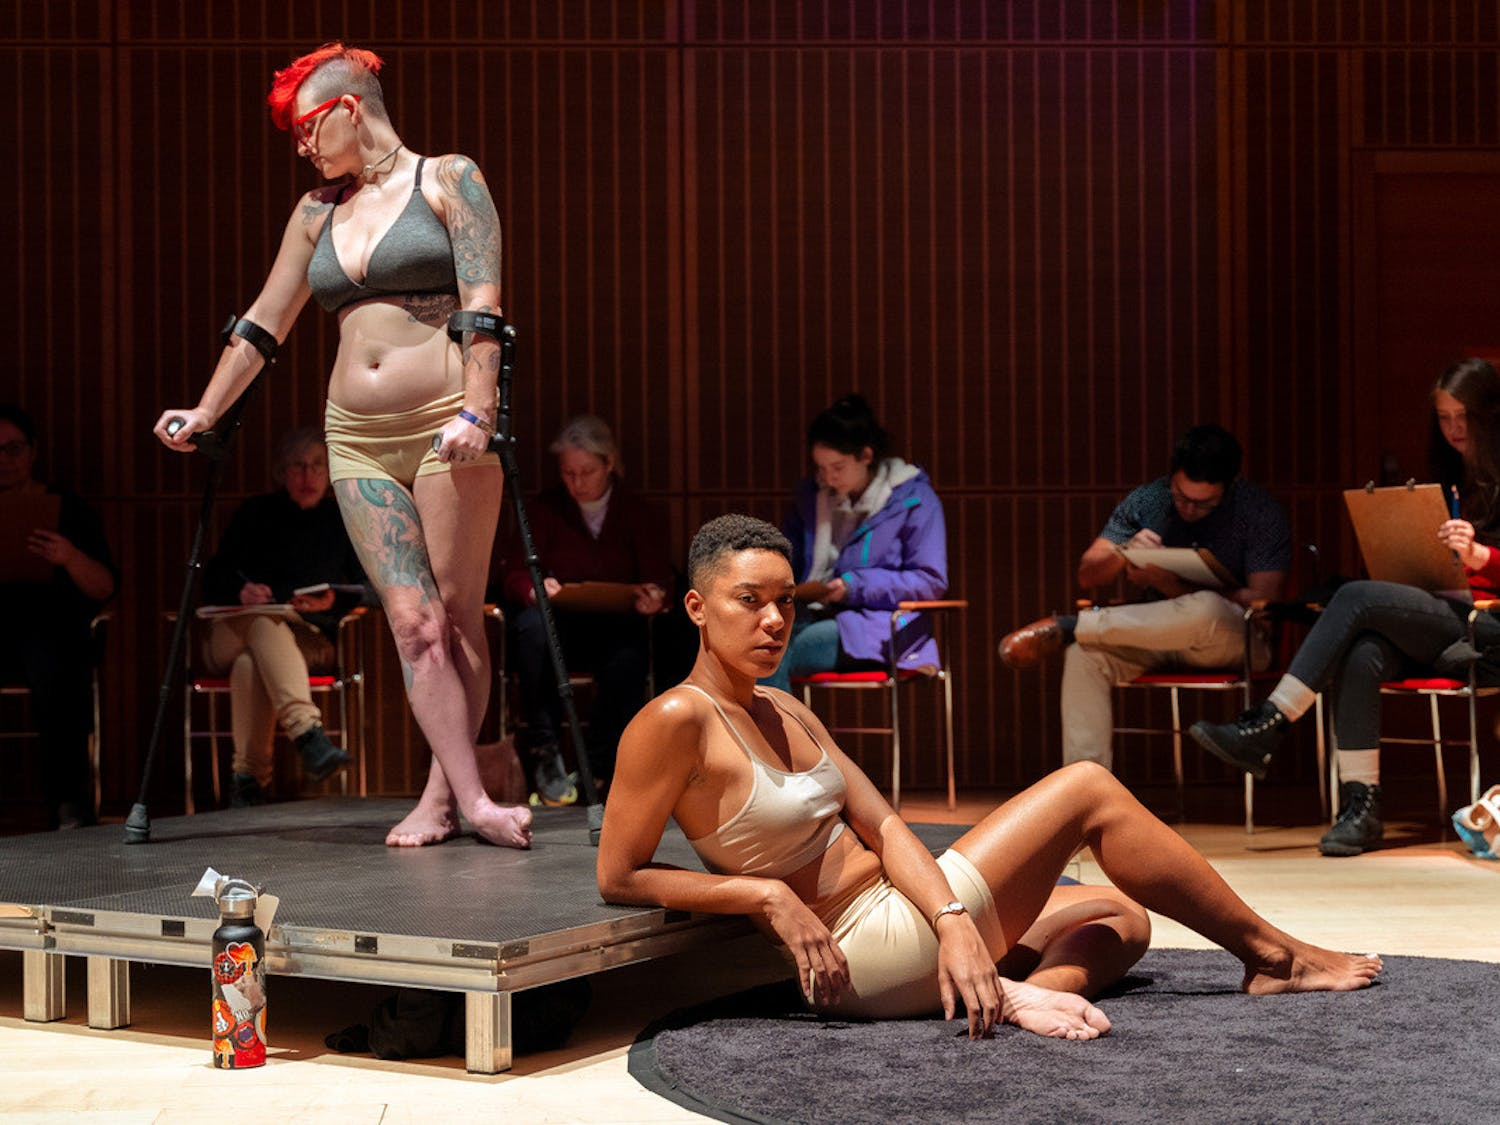 Figure On Diversity models pose at the Isabella Stewart Gardner Museum's Frank Hatch Free Day in an open drawing event on Monday, February 17, 2021. Around 500 people attended the event. (Photo Courtesy by Faizal Westcott)